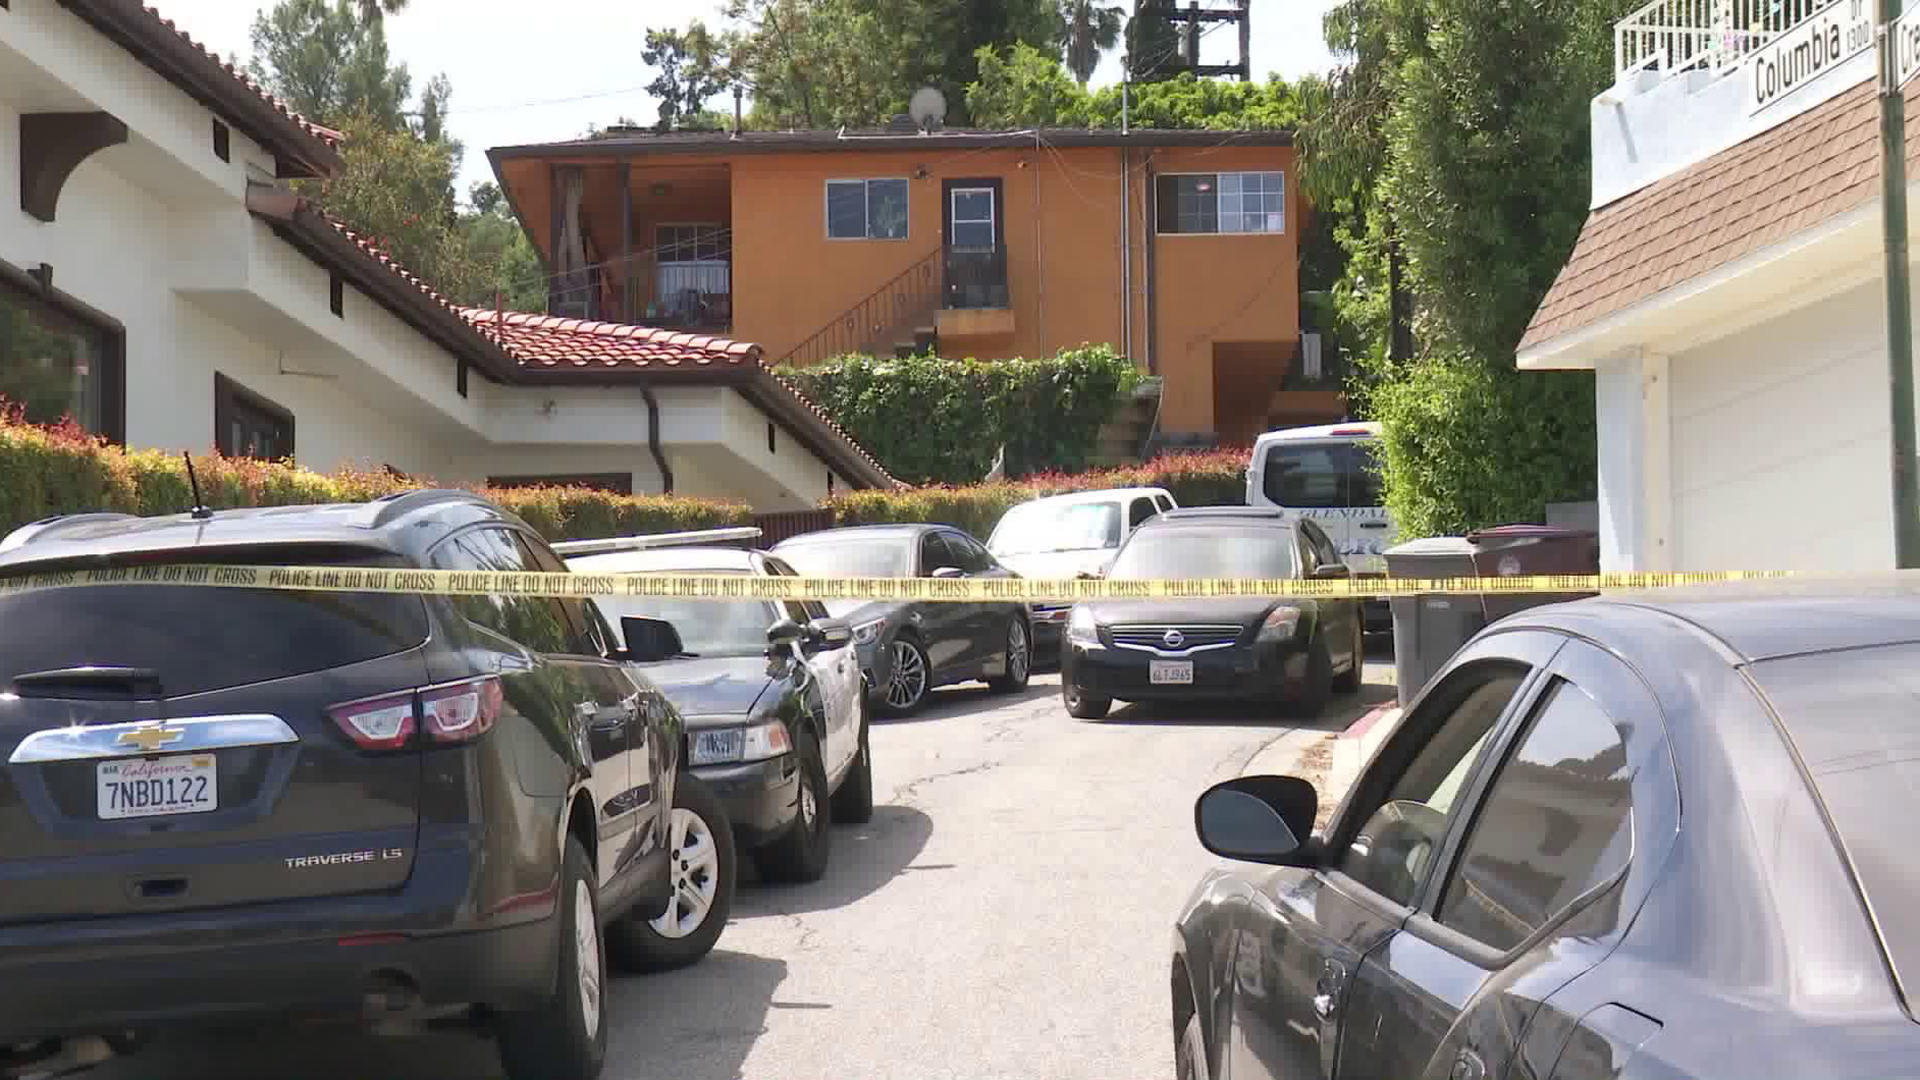 A home where three men were found dead in Glendale is shown during an ongoing homicide investigation on April 18, 2019. (Credit: KTLA)